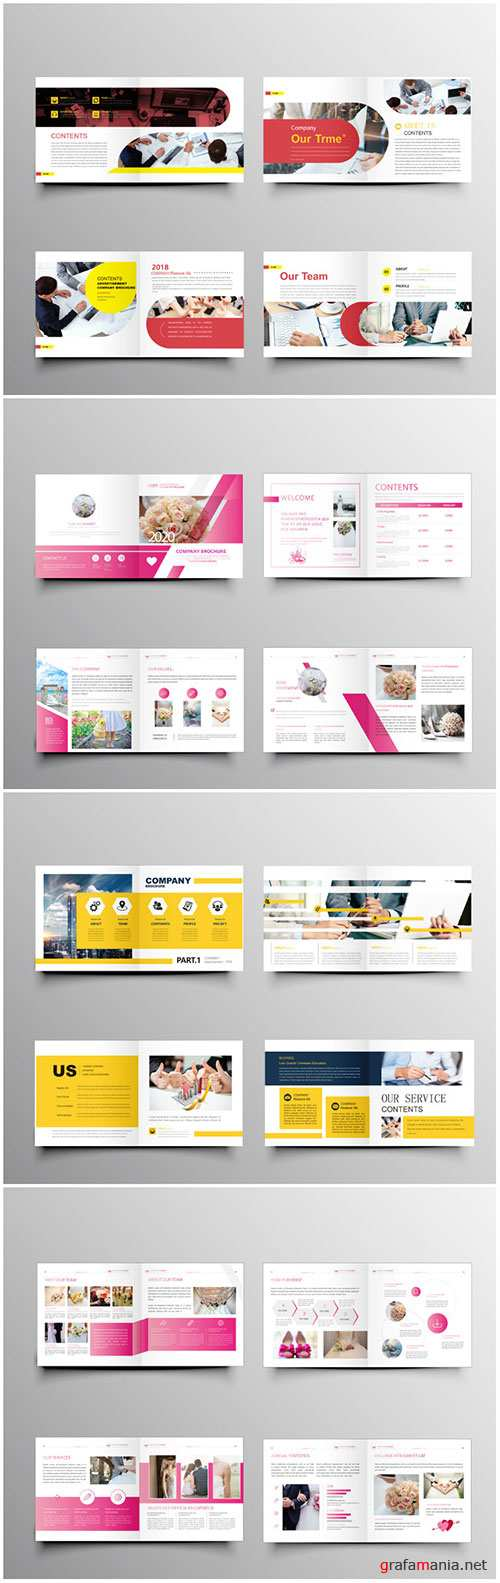 Brochure template vector layout design, corporate business annual report, magazine, flyer mockup # 227